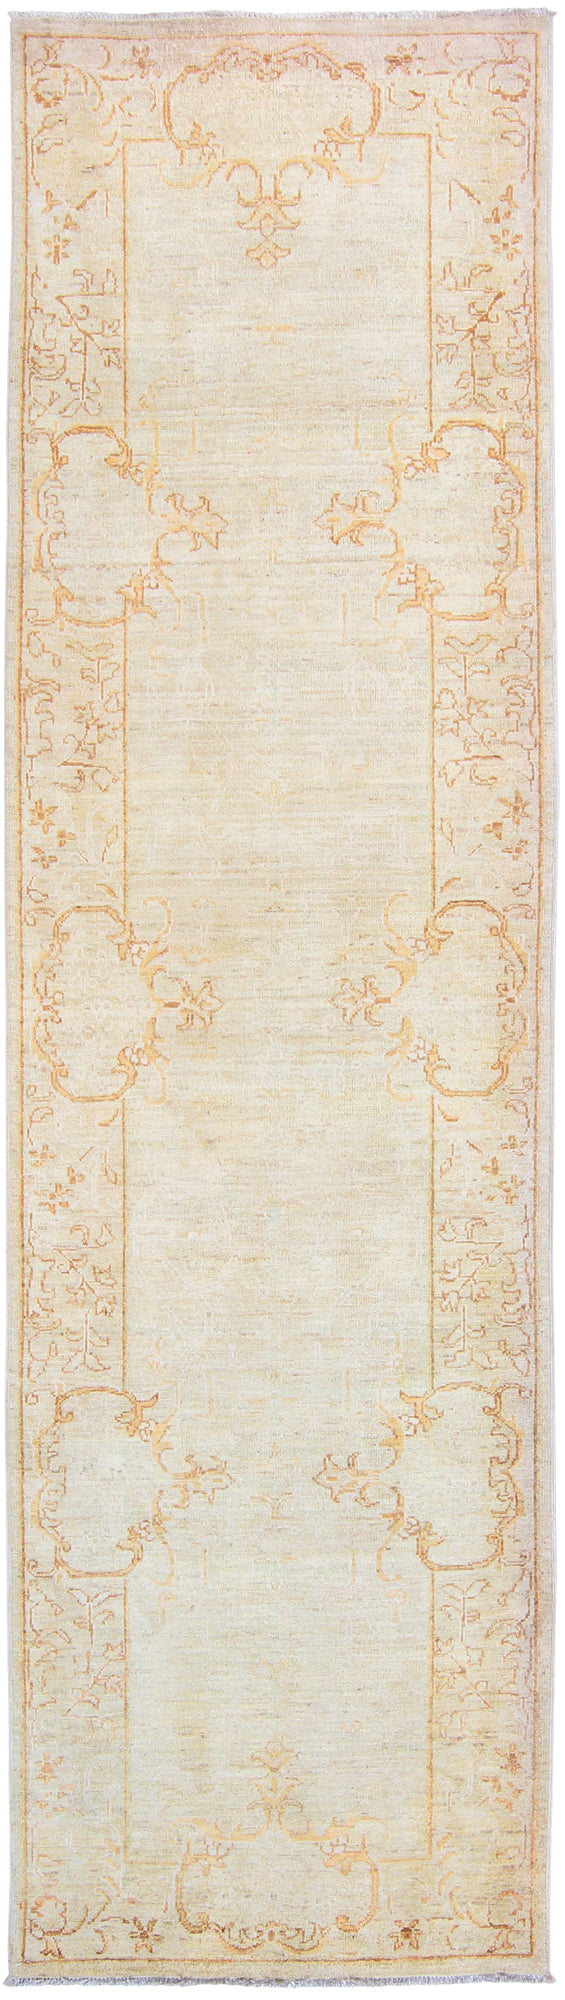 Muted Chobi Runner-Turco Persian Rug Company Inc.